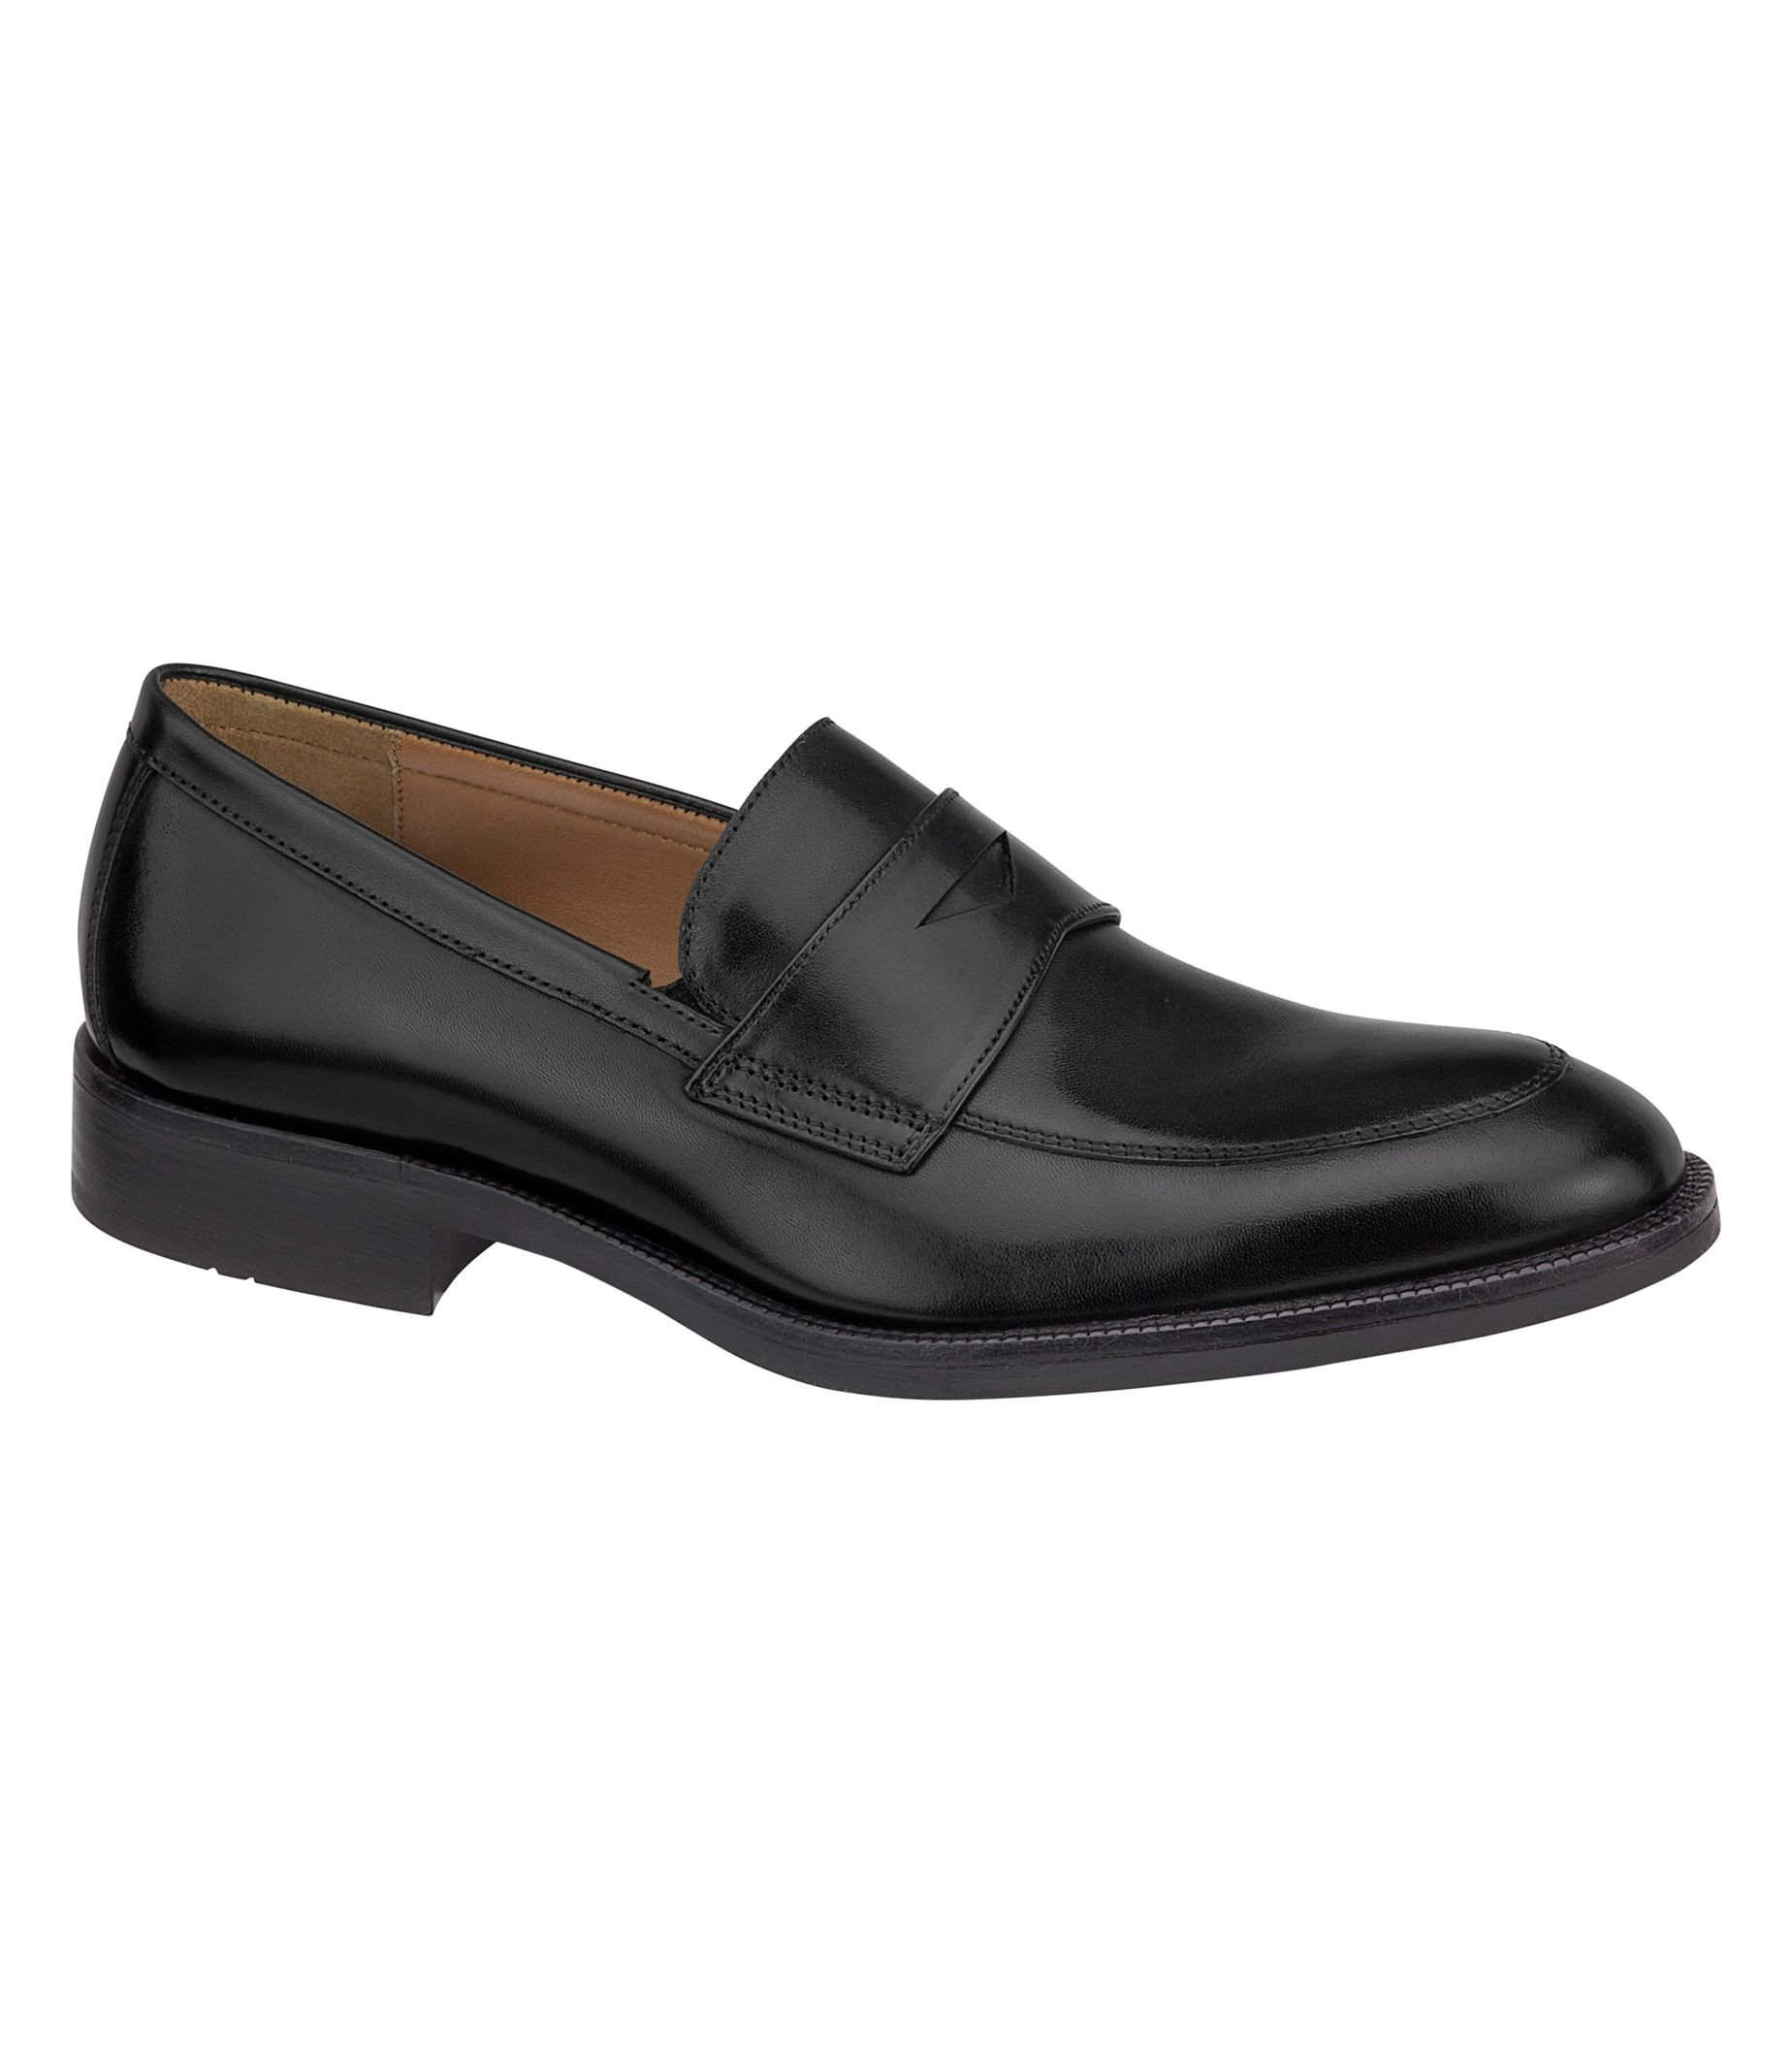 7df2bddf565 Beckwith Penny Shoe by Johnston   Murphy - Johnston   Murphy